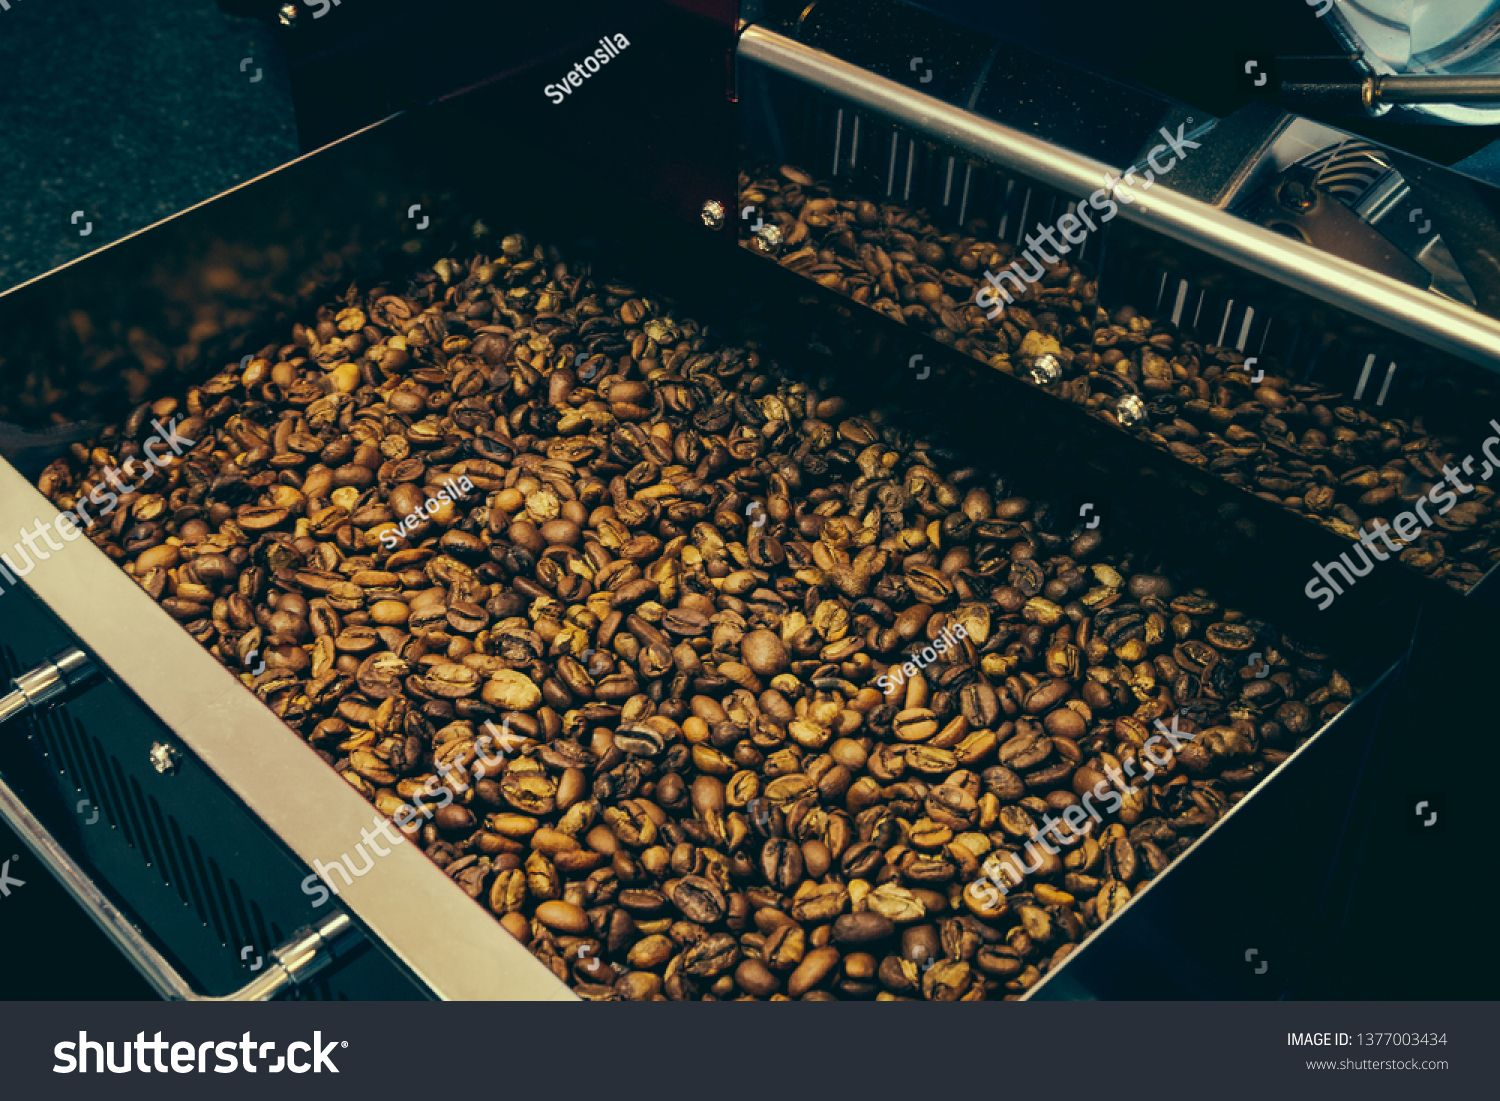 Roaster machine prepared coffee beans. Process of coffee